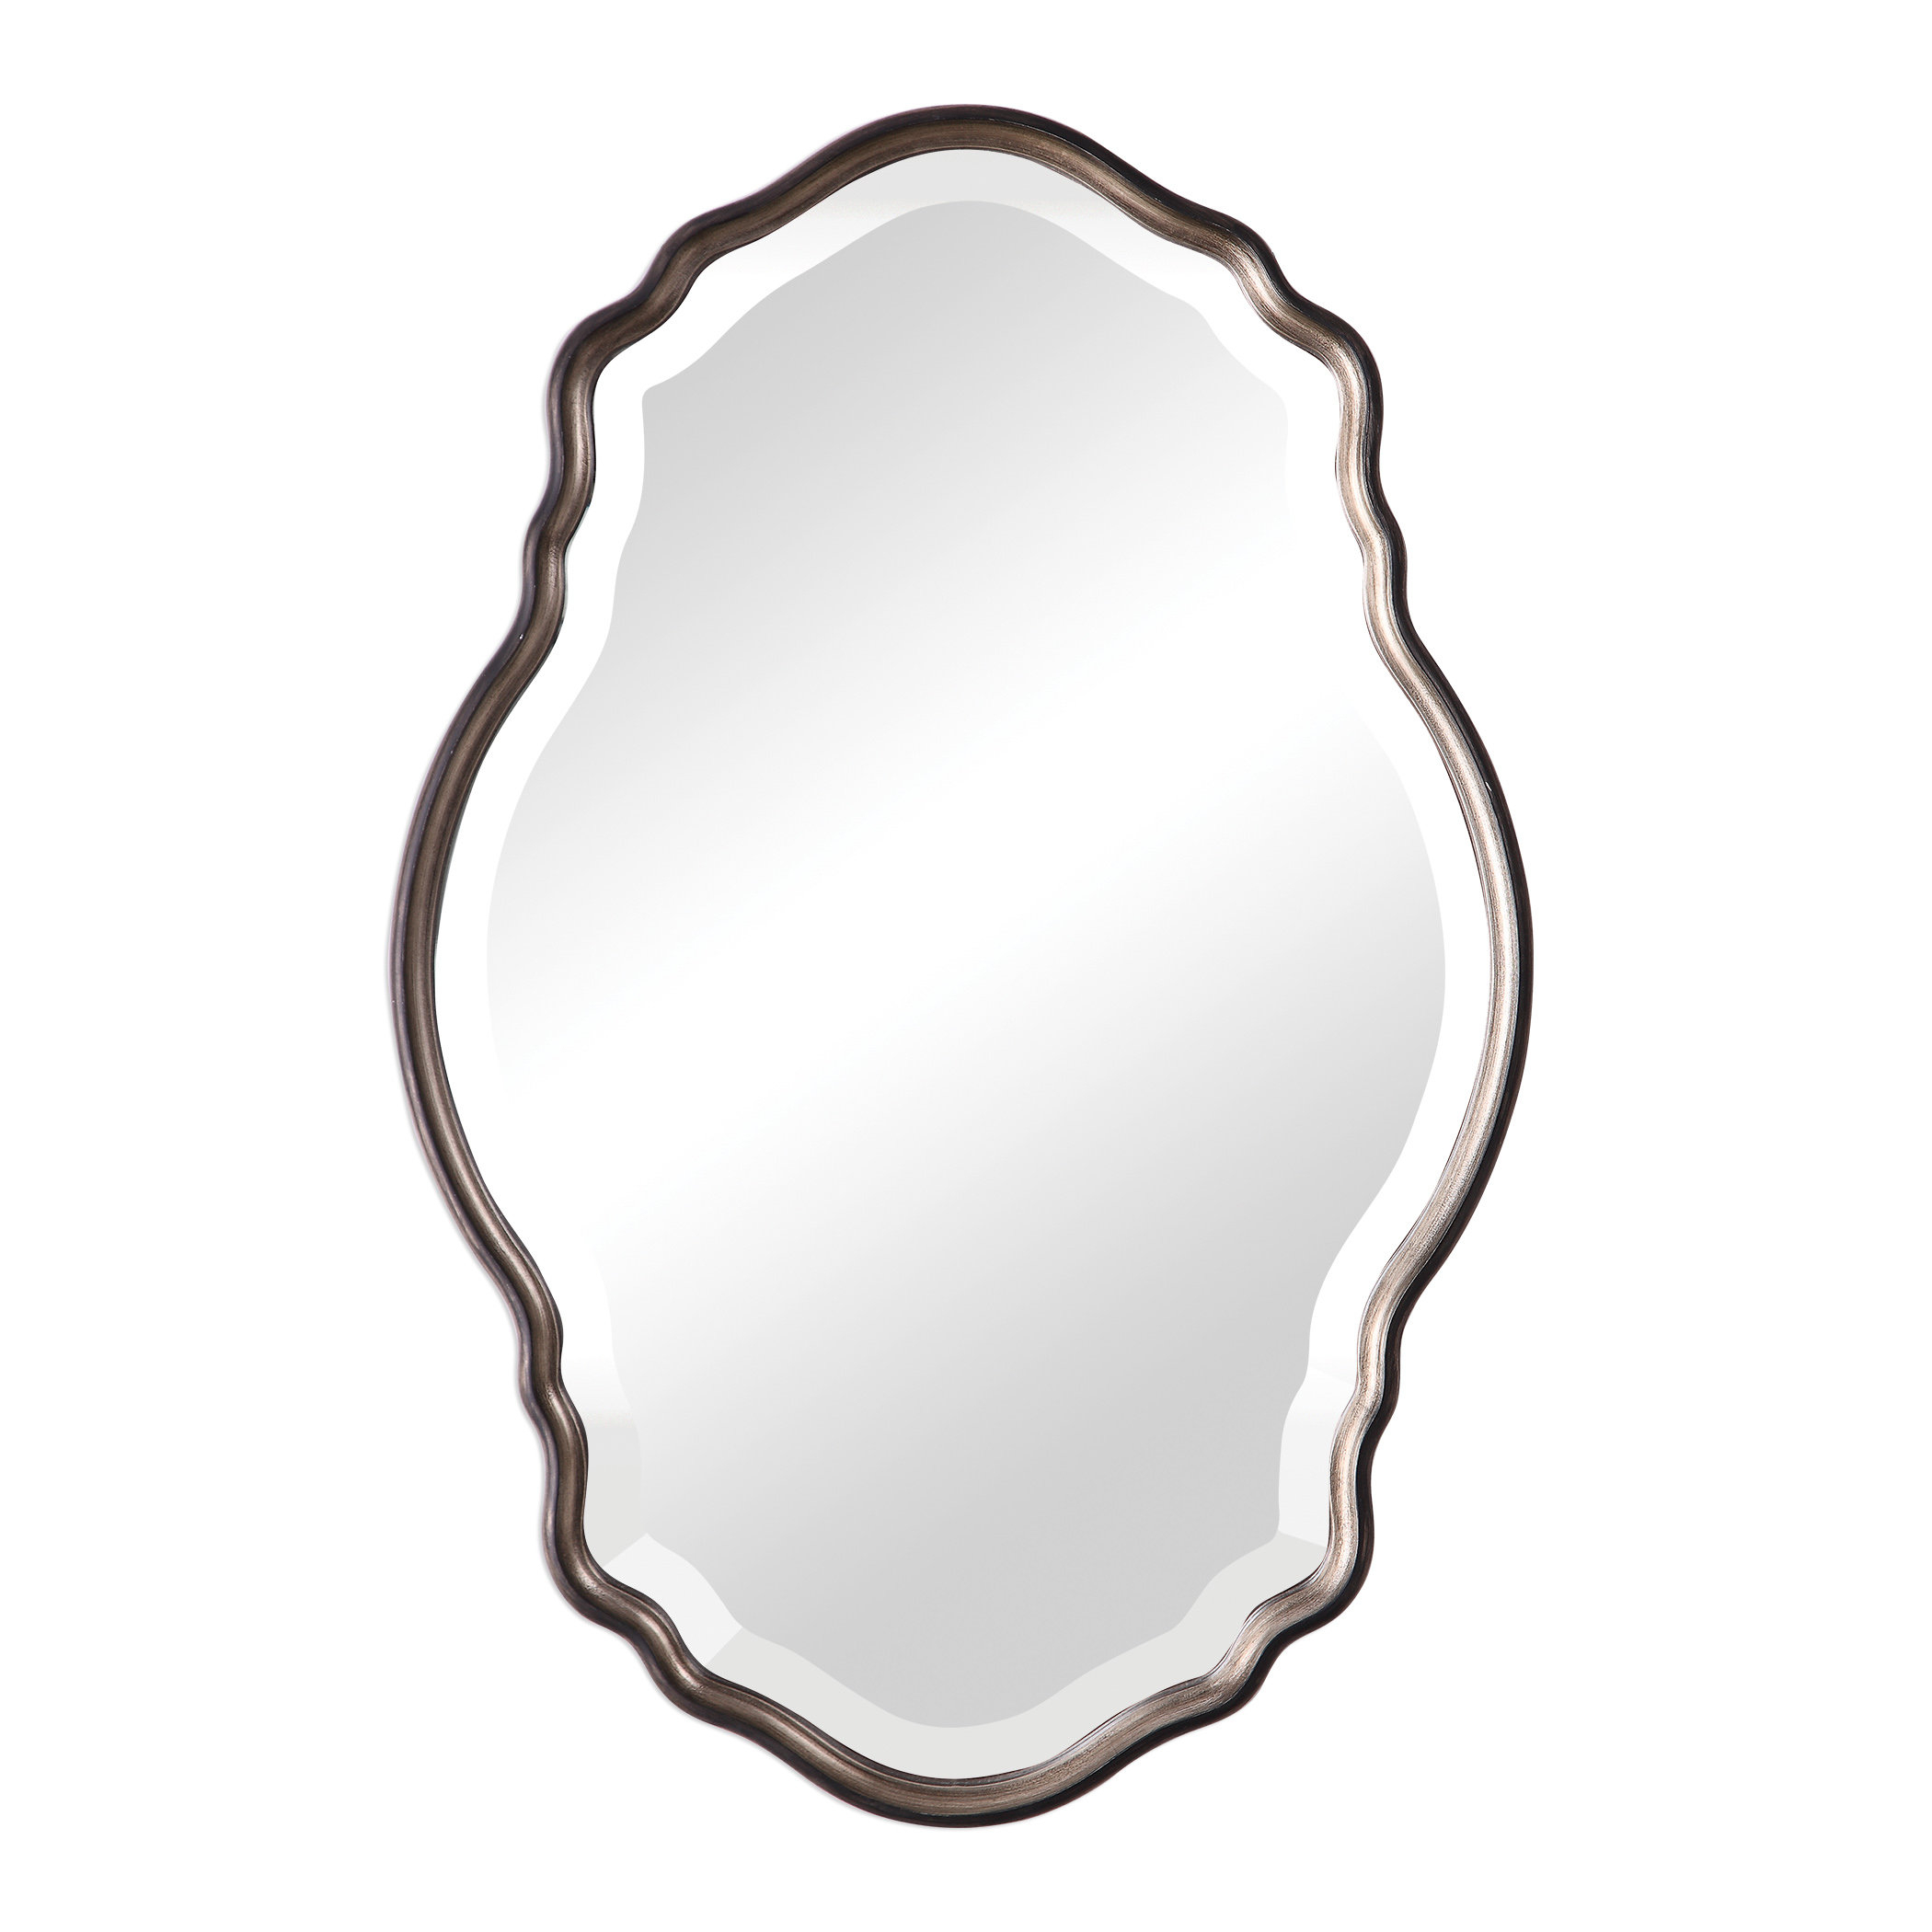 Christner Modern & Contemporary Beveled Wall Mirror In Modern & Contemporary Beveled Wall Mirrors (View 13 of 20)